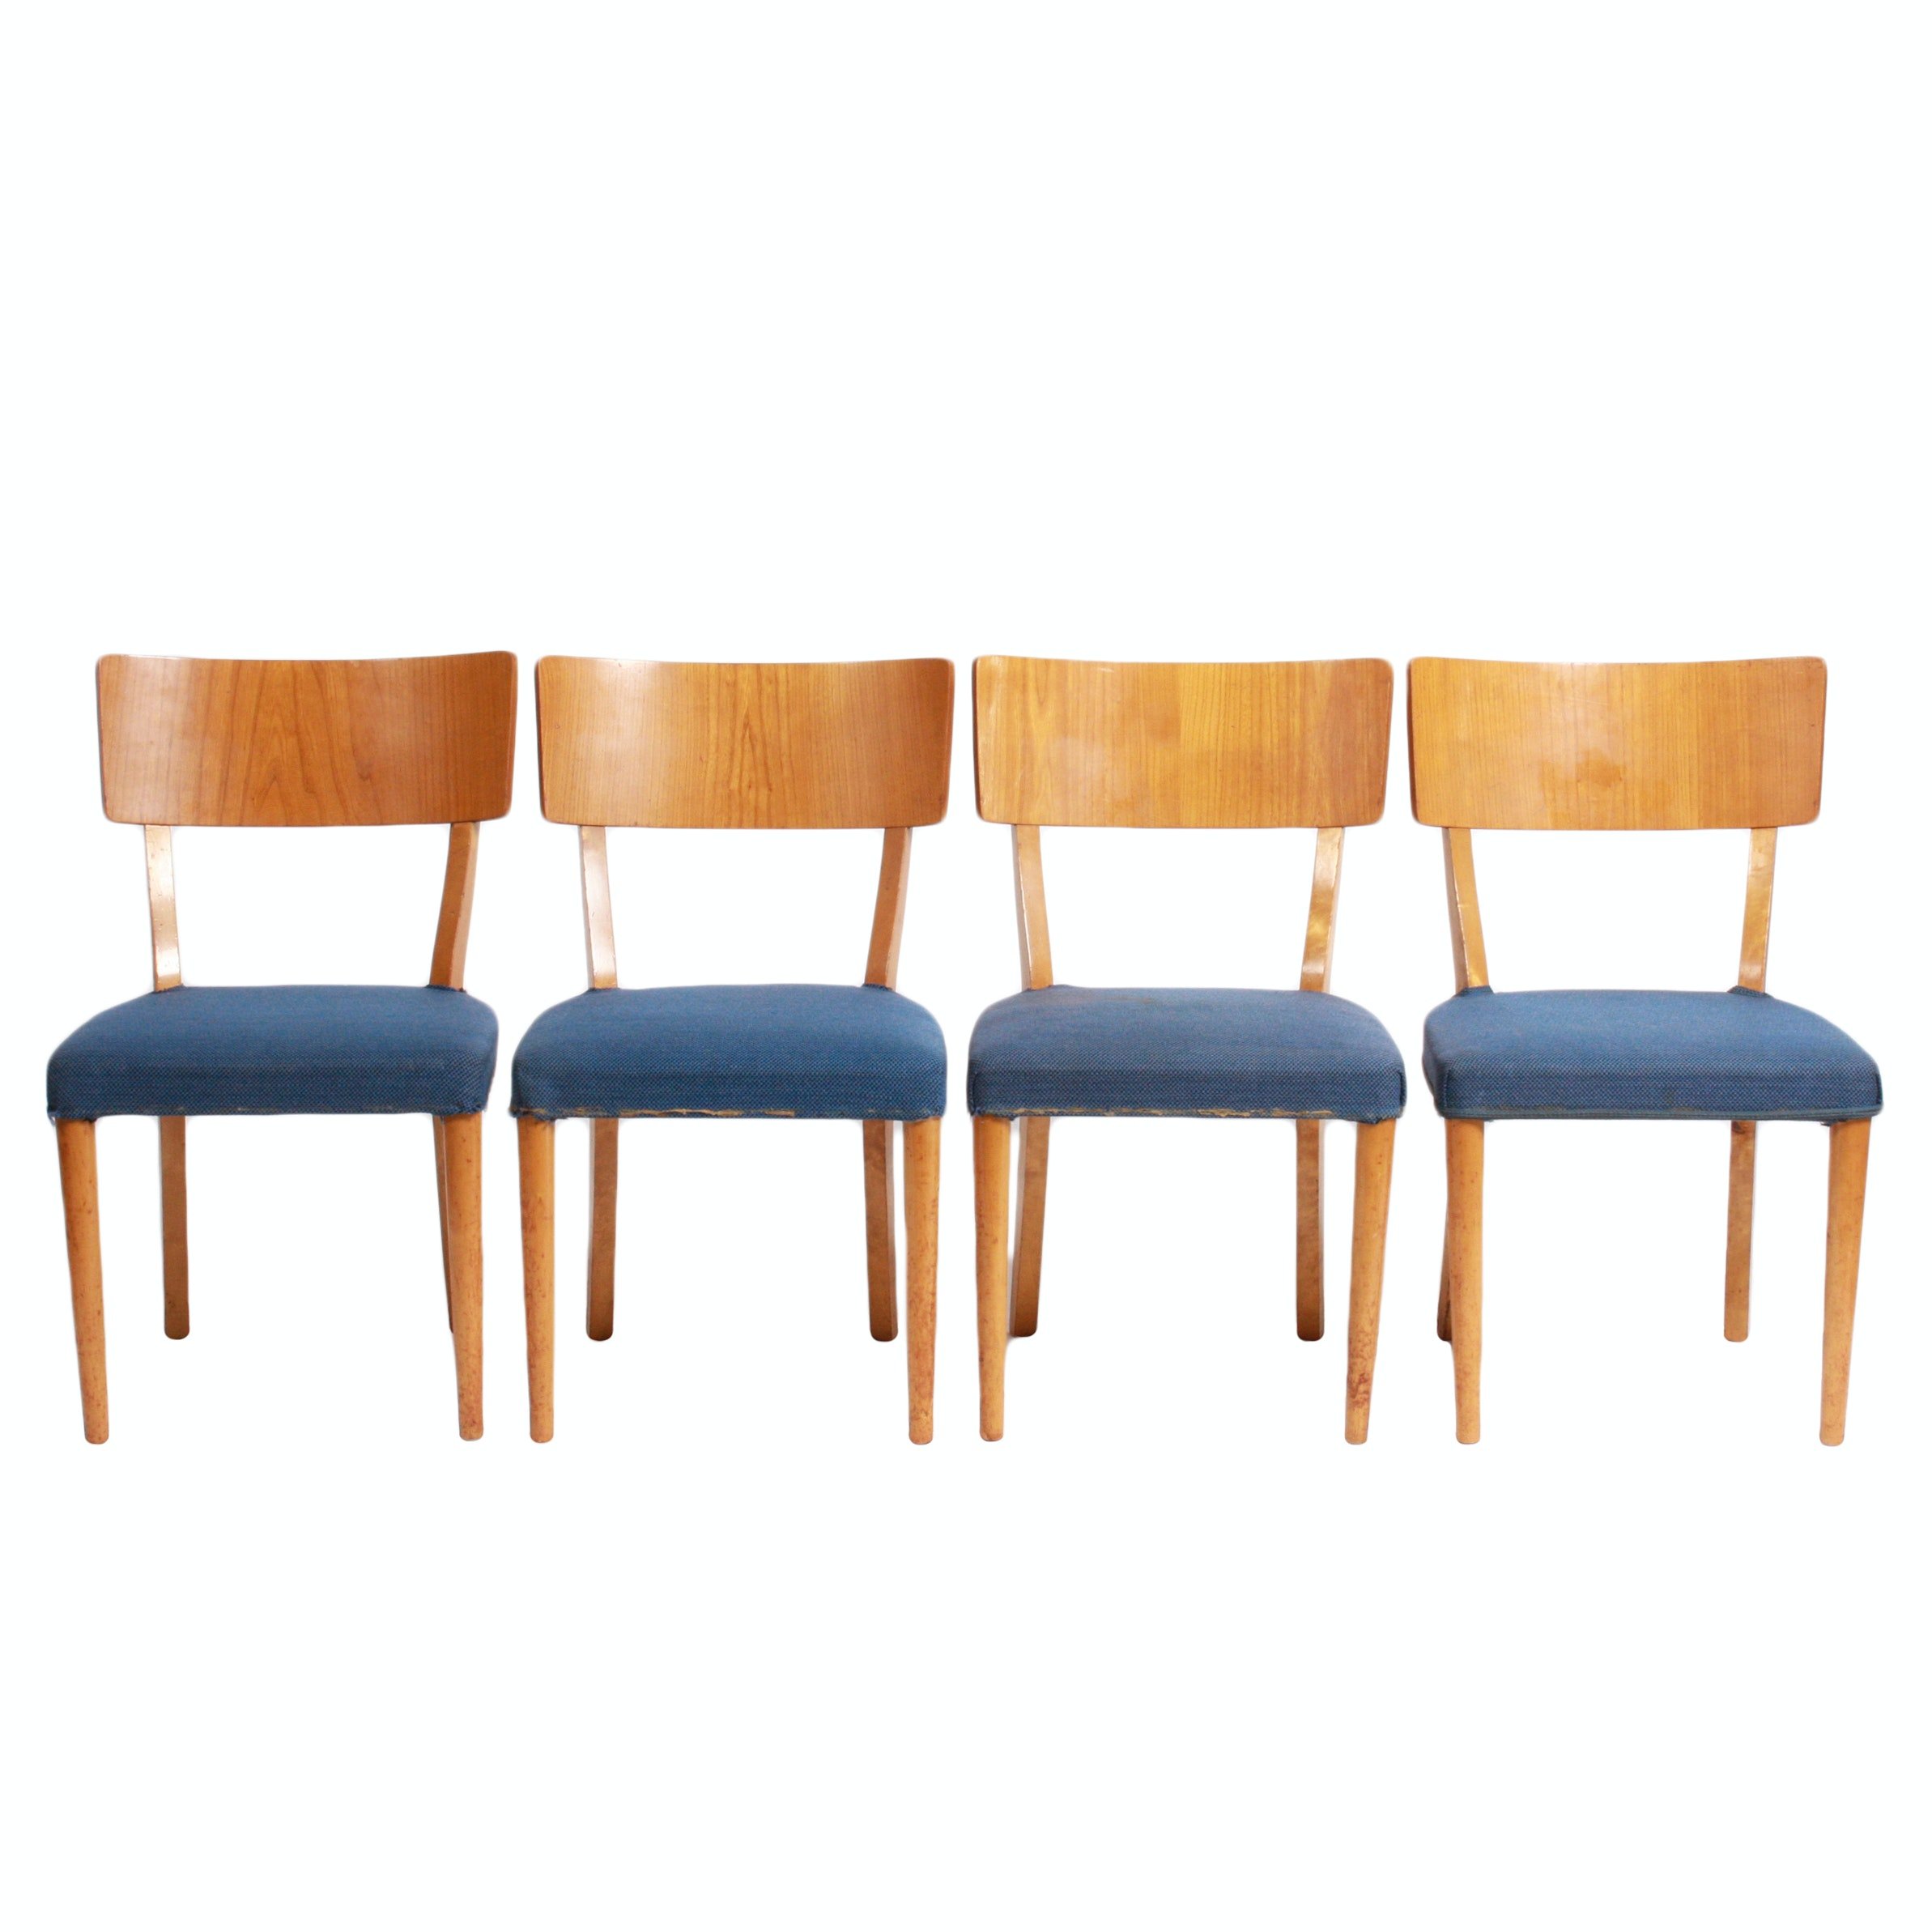 Four Swedish Mid Century Modern Teak Side Chairs by Petterson & Nilson